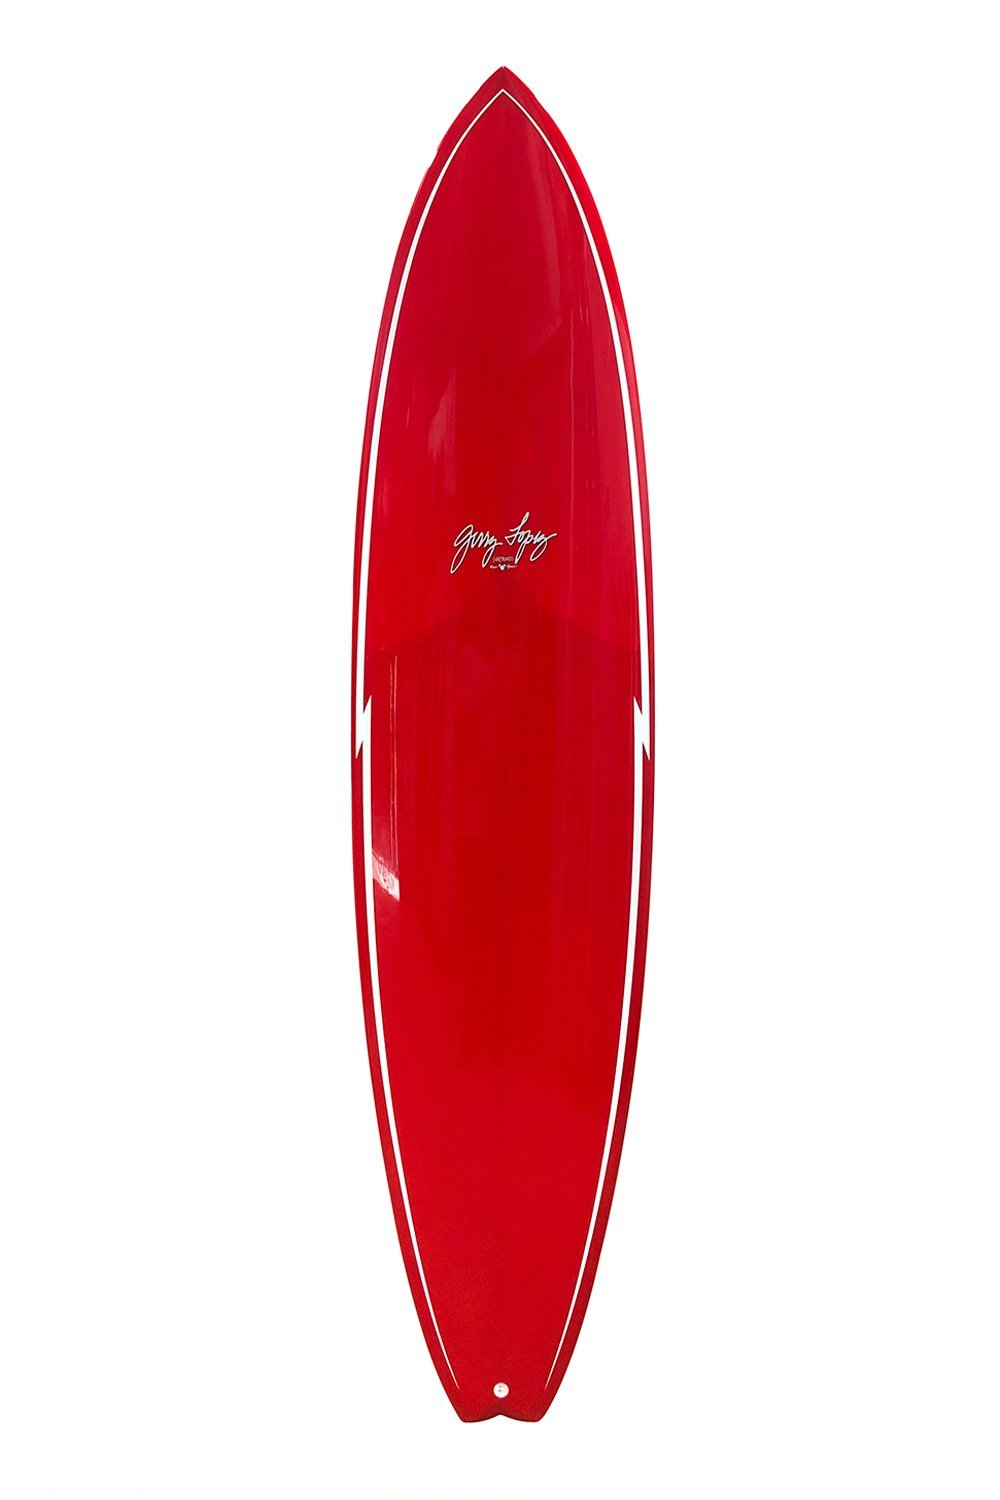 Gerry Lopez Little Darlin Five Fin Surfboard